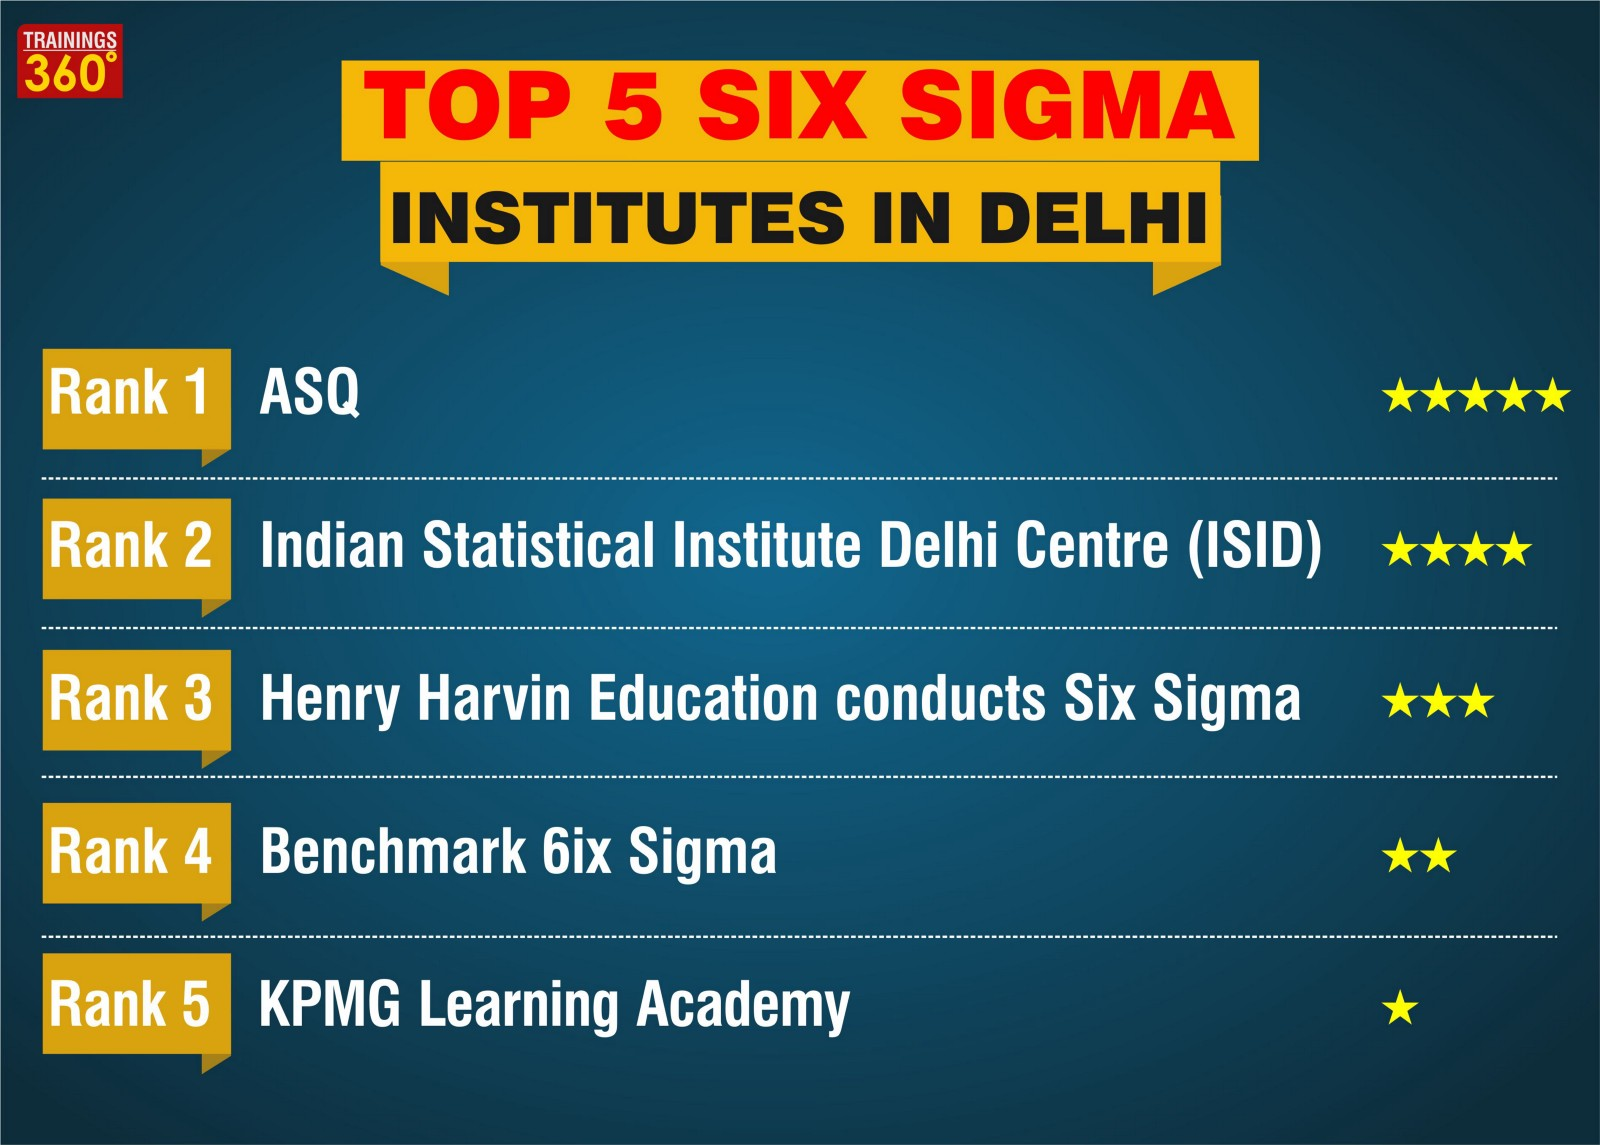 Top 10 institutes for six sigma courses trainings360 medium top 5 six sigma institutes in delhi 1betcityfo Gallery